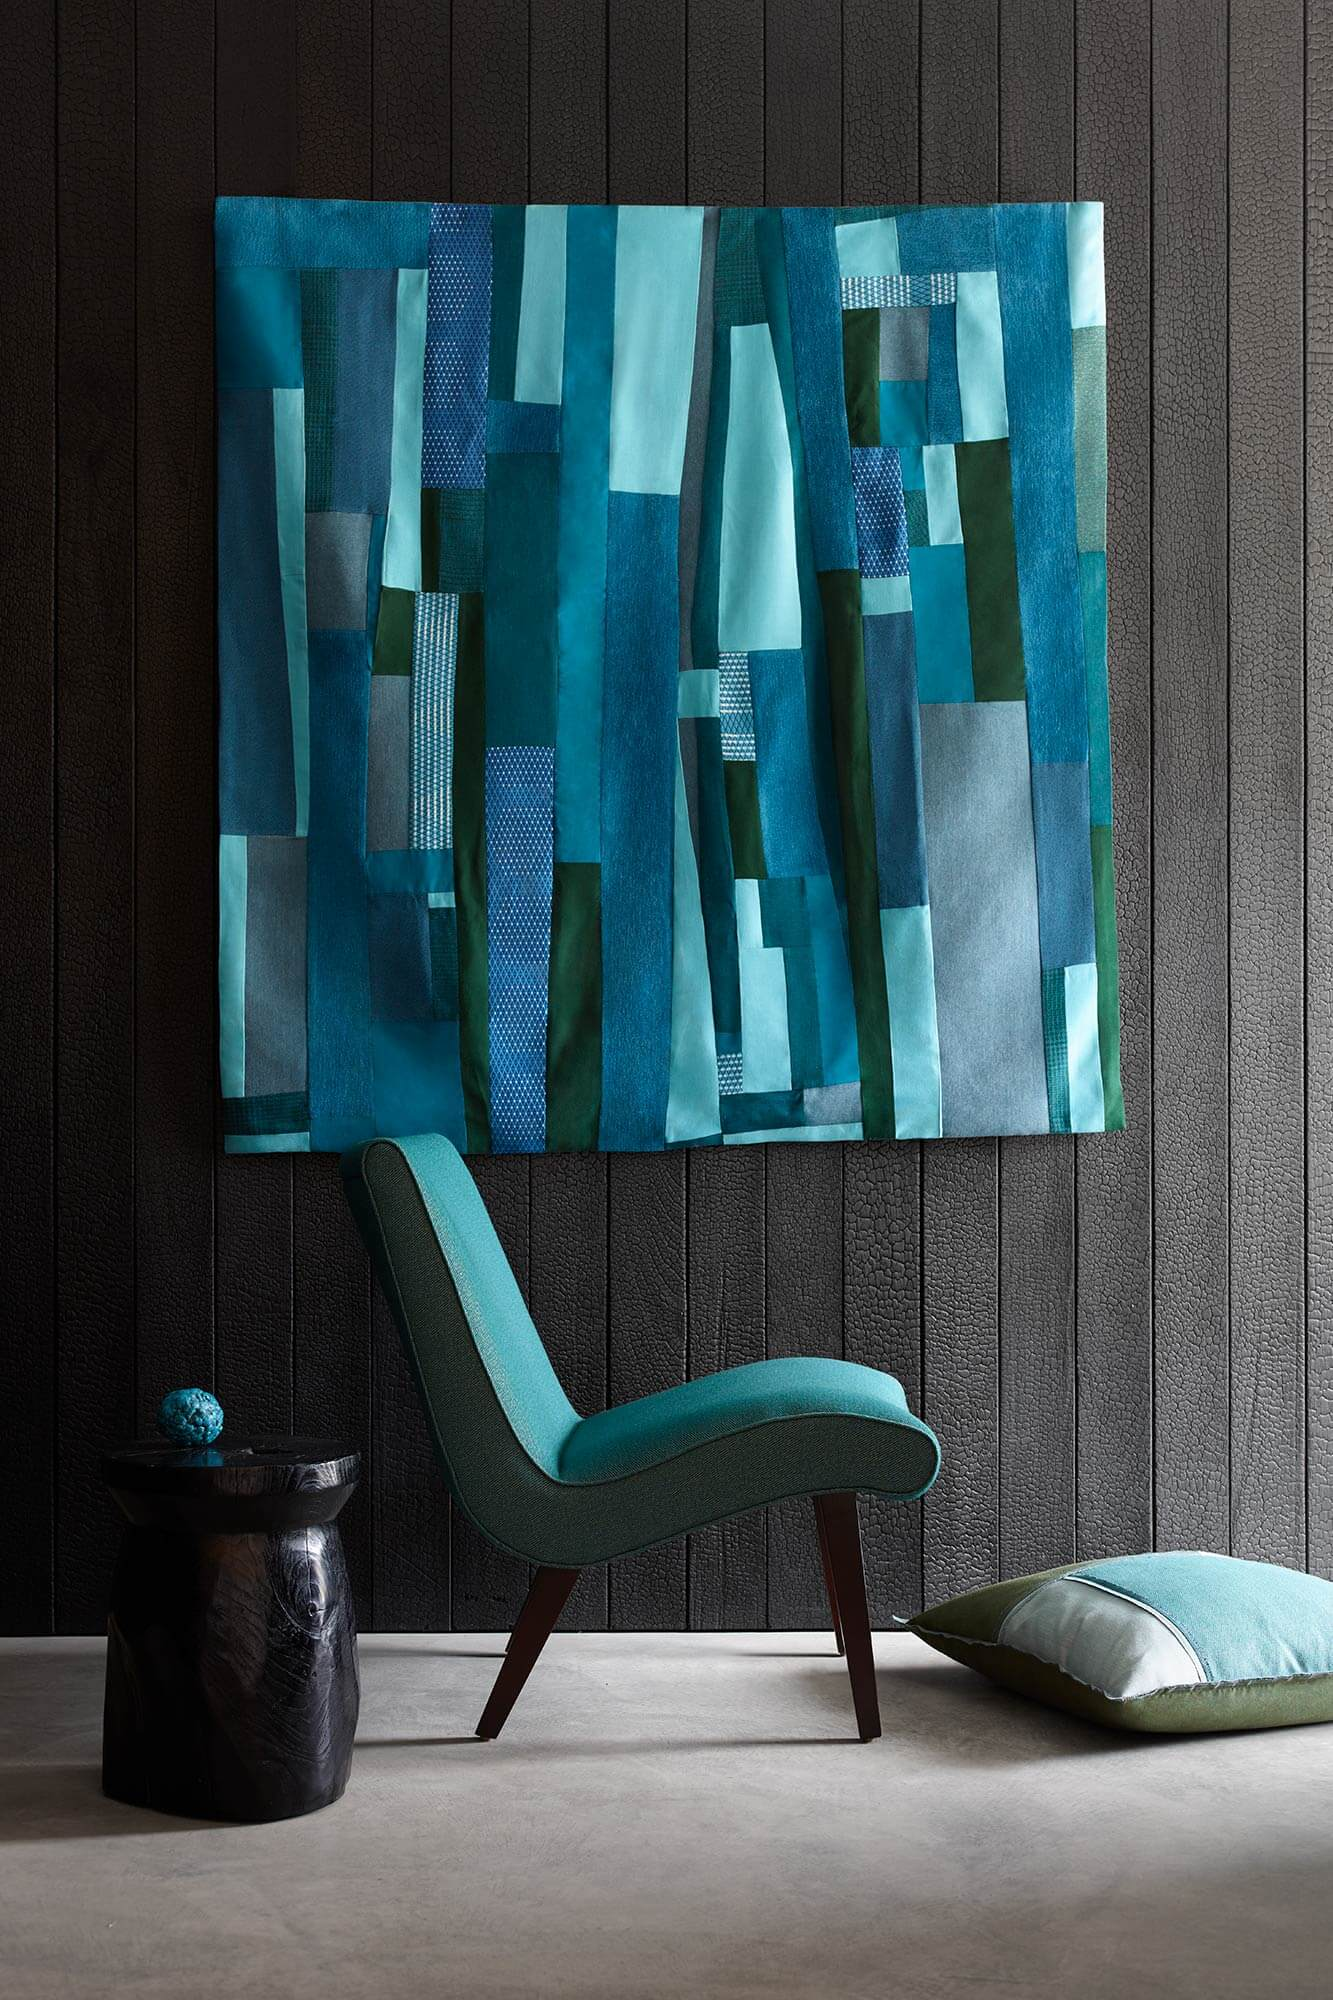 Teal upholstered armless chair with wall hanging featuring blue and green Sunbrella upholstery fabrics